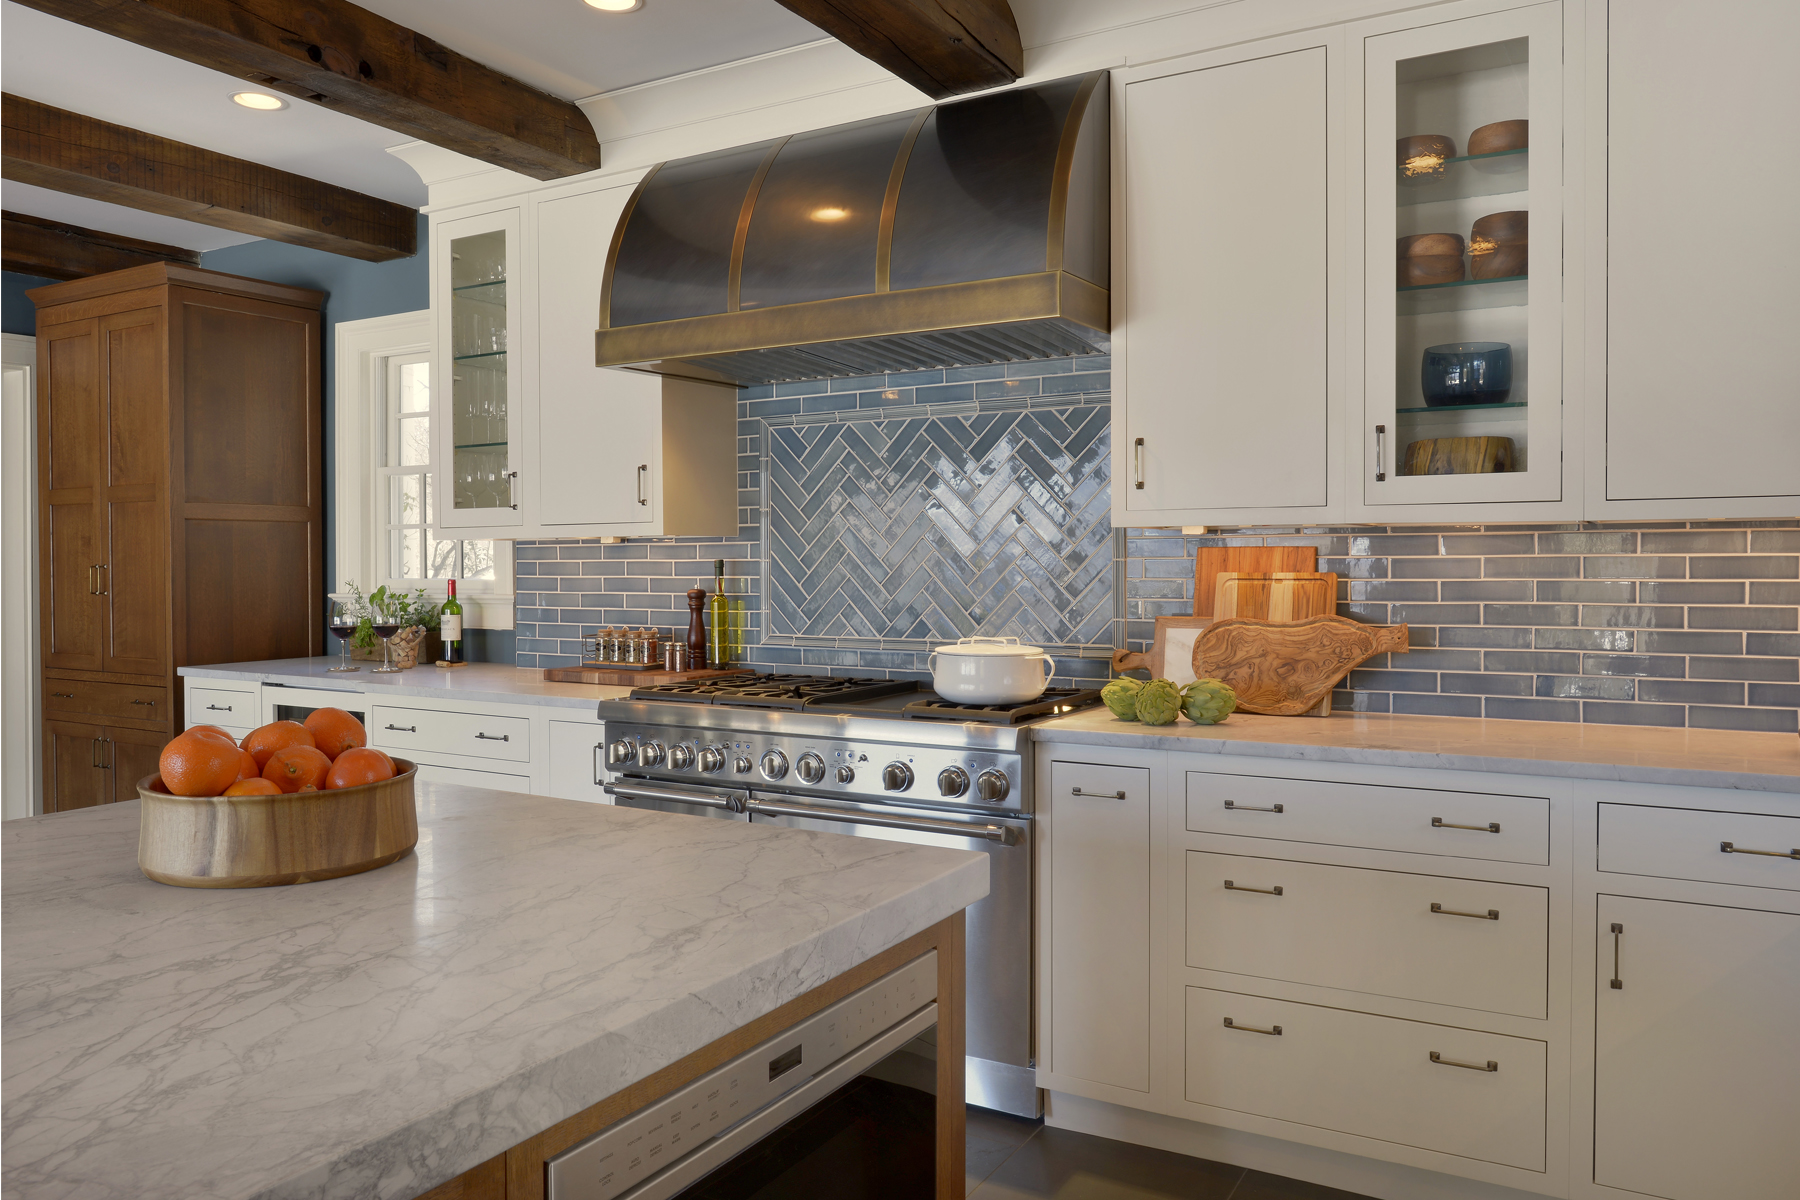 Hearth area of L-shaped expansive kitchen features blue-glazed tile backsplash in a herringbone pattern, metal hood, and fully custom white painted flat panel cabintery by Bilotta. Flat panel inset rift cut oak Bilotta Cabintry is used for the hutch and island. Design by Paulette Gambacorta of Bilotta Kitchens.